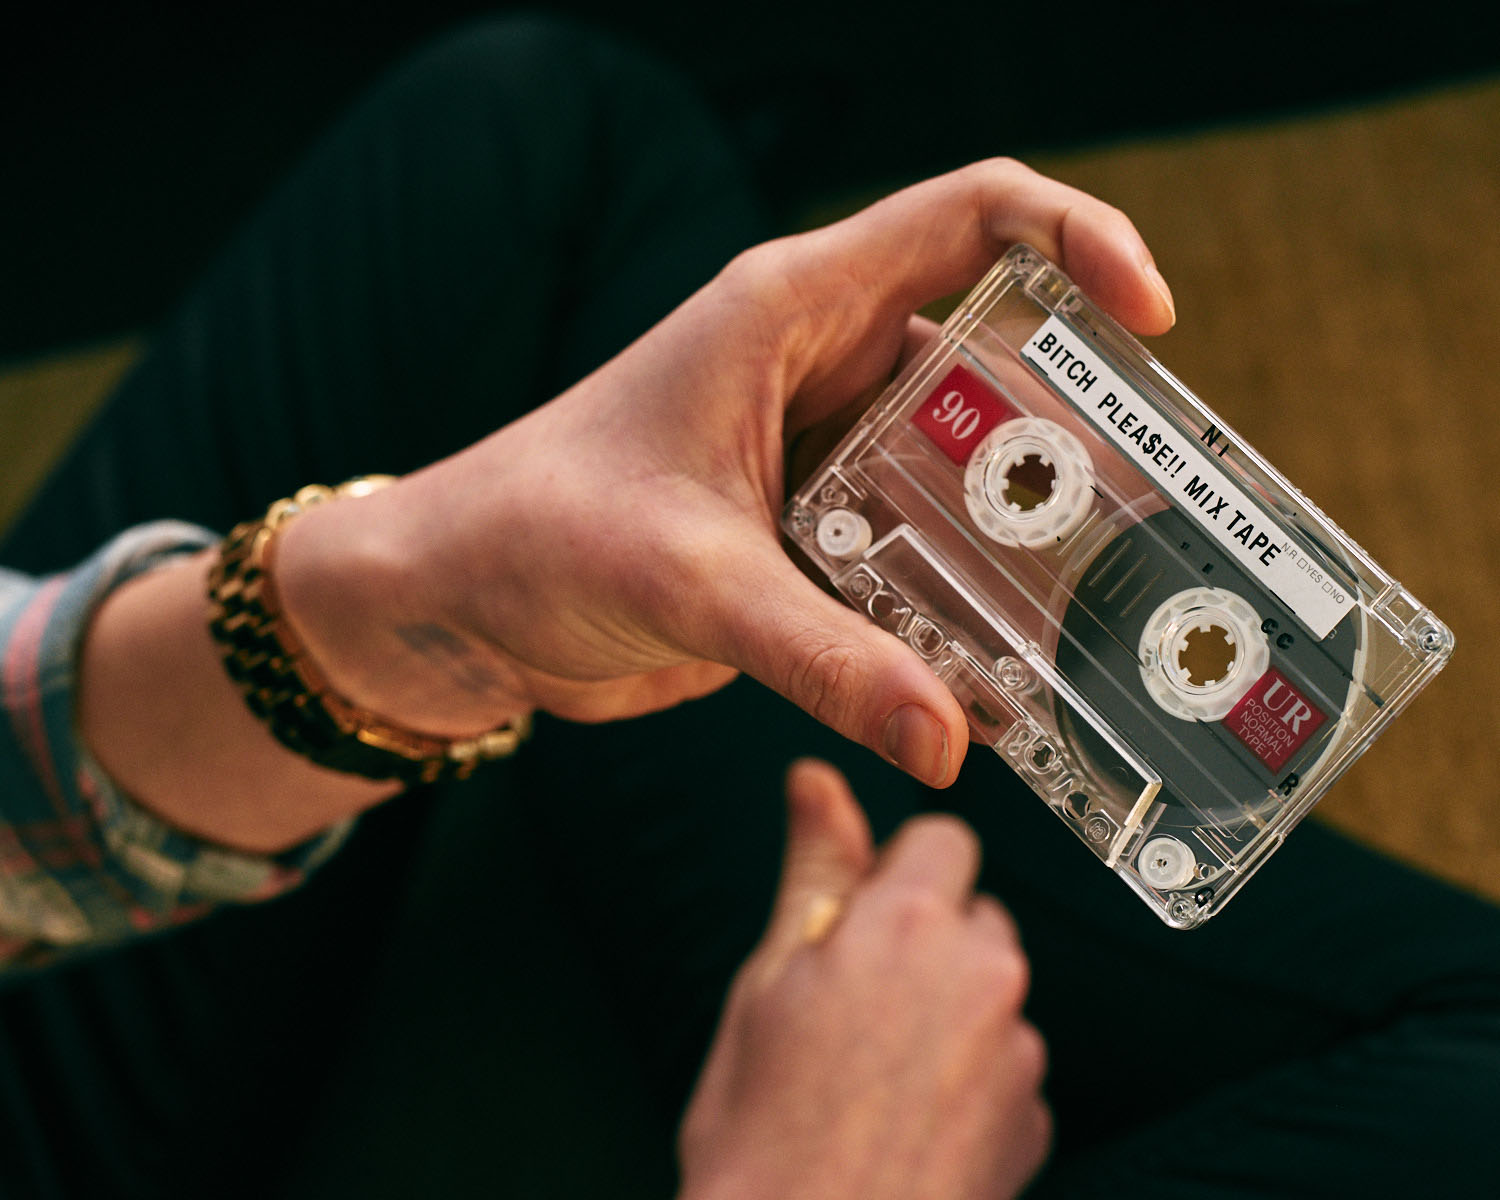 Hand/cassette tape, by lifestyle photographer Tim Cole